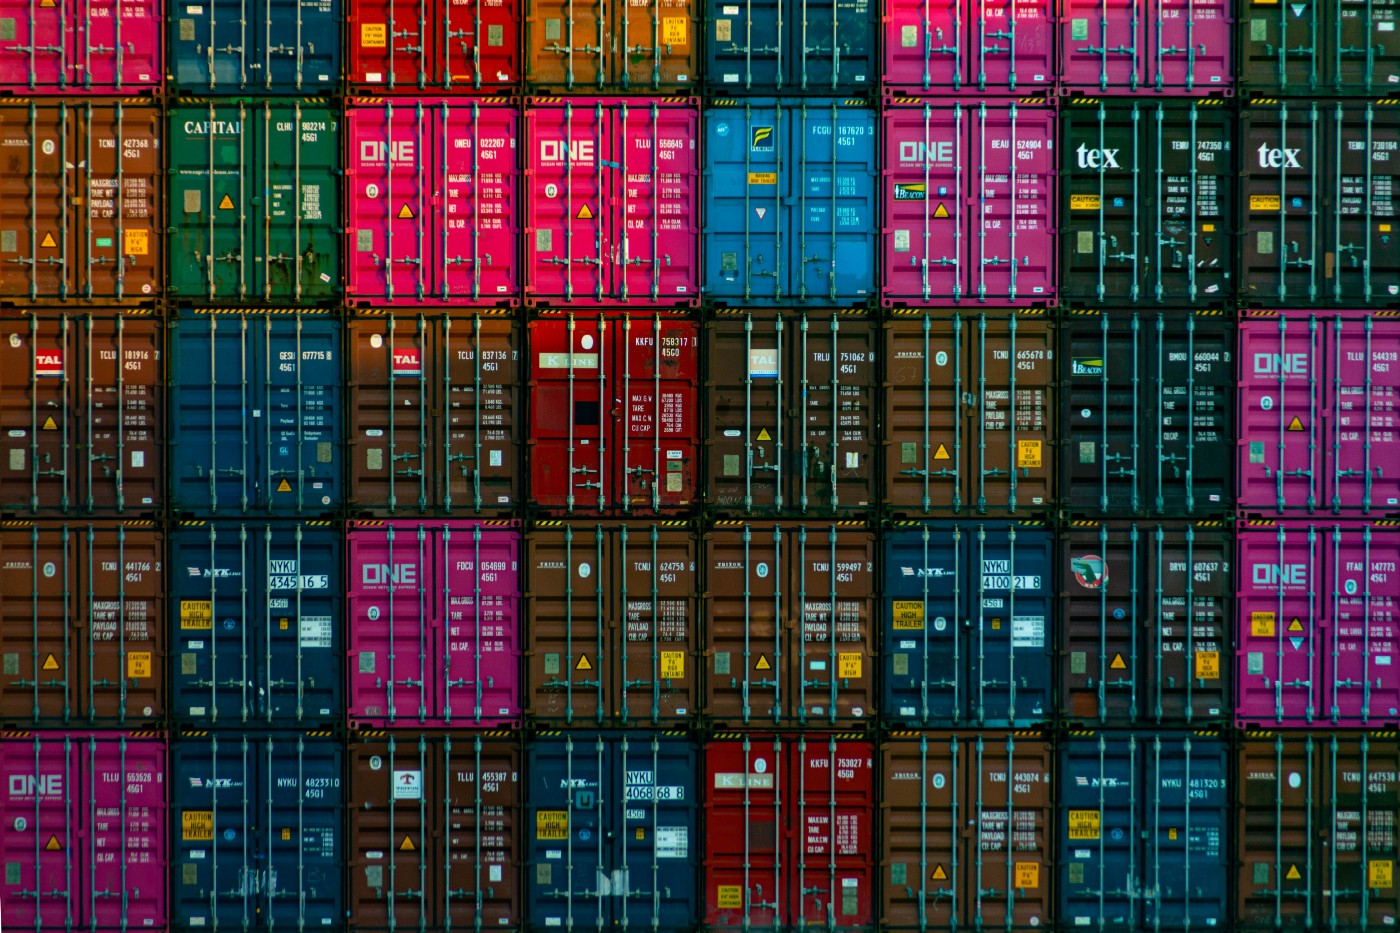 Stacked Shipping Containers: A Simplistic Analogy for Objects in Memory